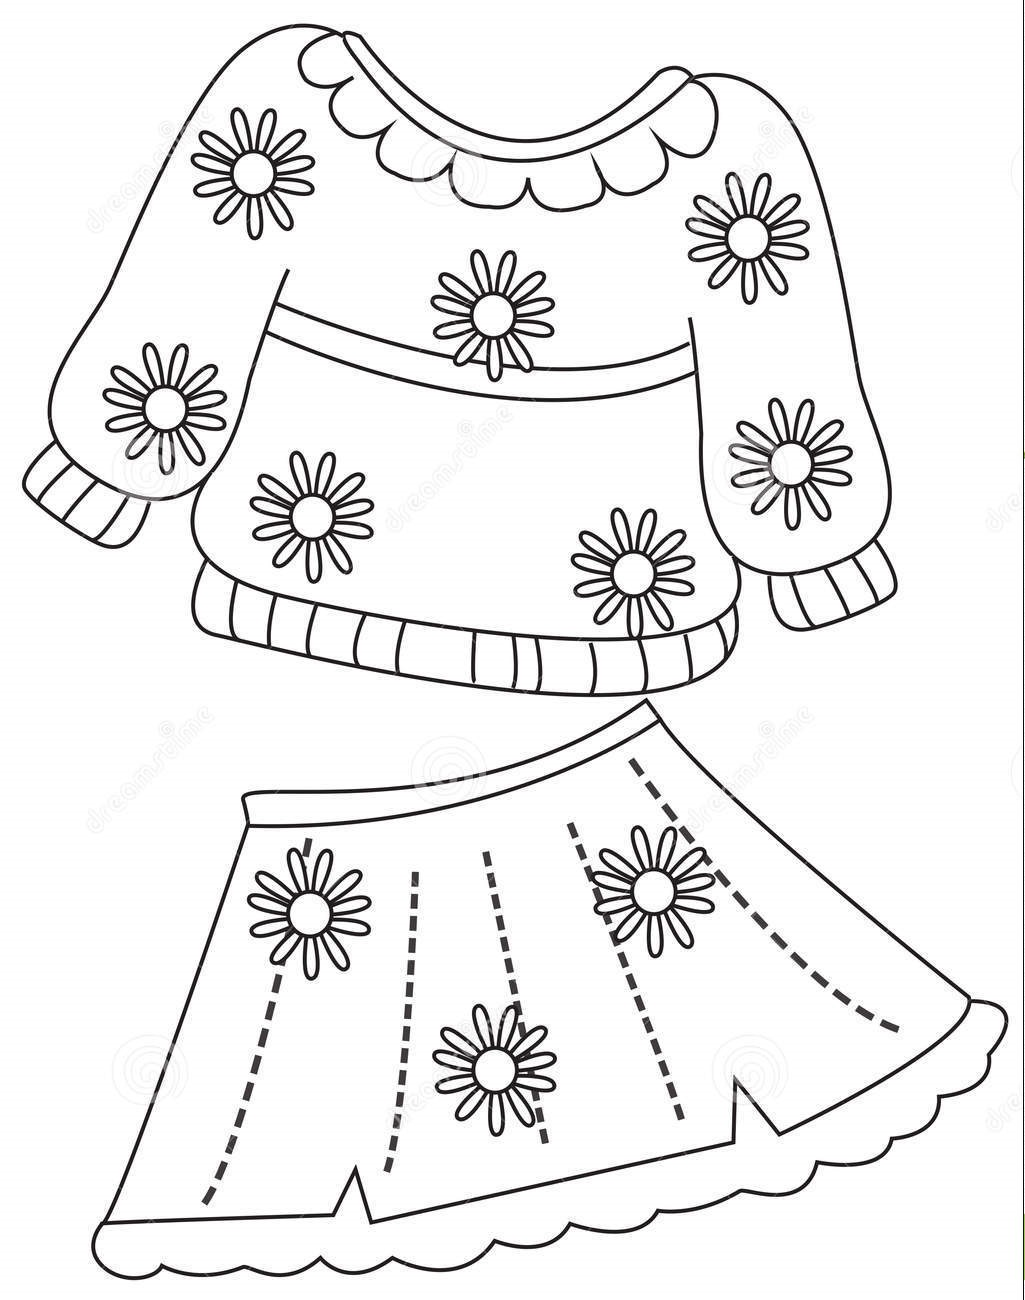 childrens clothes coloring pages - photo#30